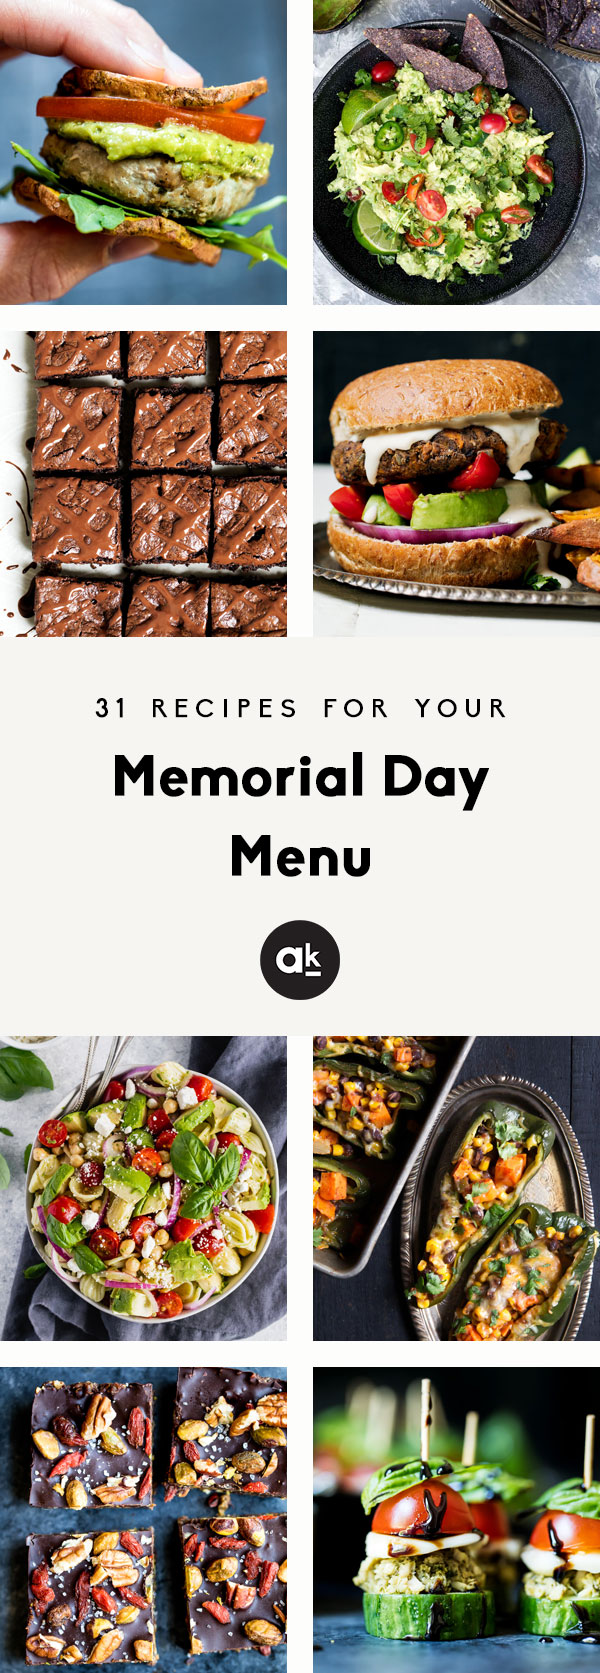 31 delicious Memorial Day recipes that are perfect for your holiday weekend menu! Skip the store-bought platters and bring these fun appetizers, flavorful grilling recipes, bright salads, and homemade sweets to your parties and potlucks. These recipes are guaranteed to impress guests!